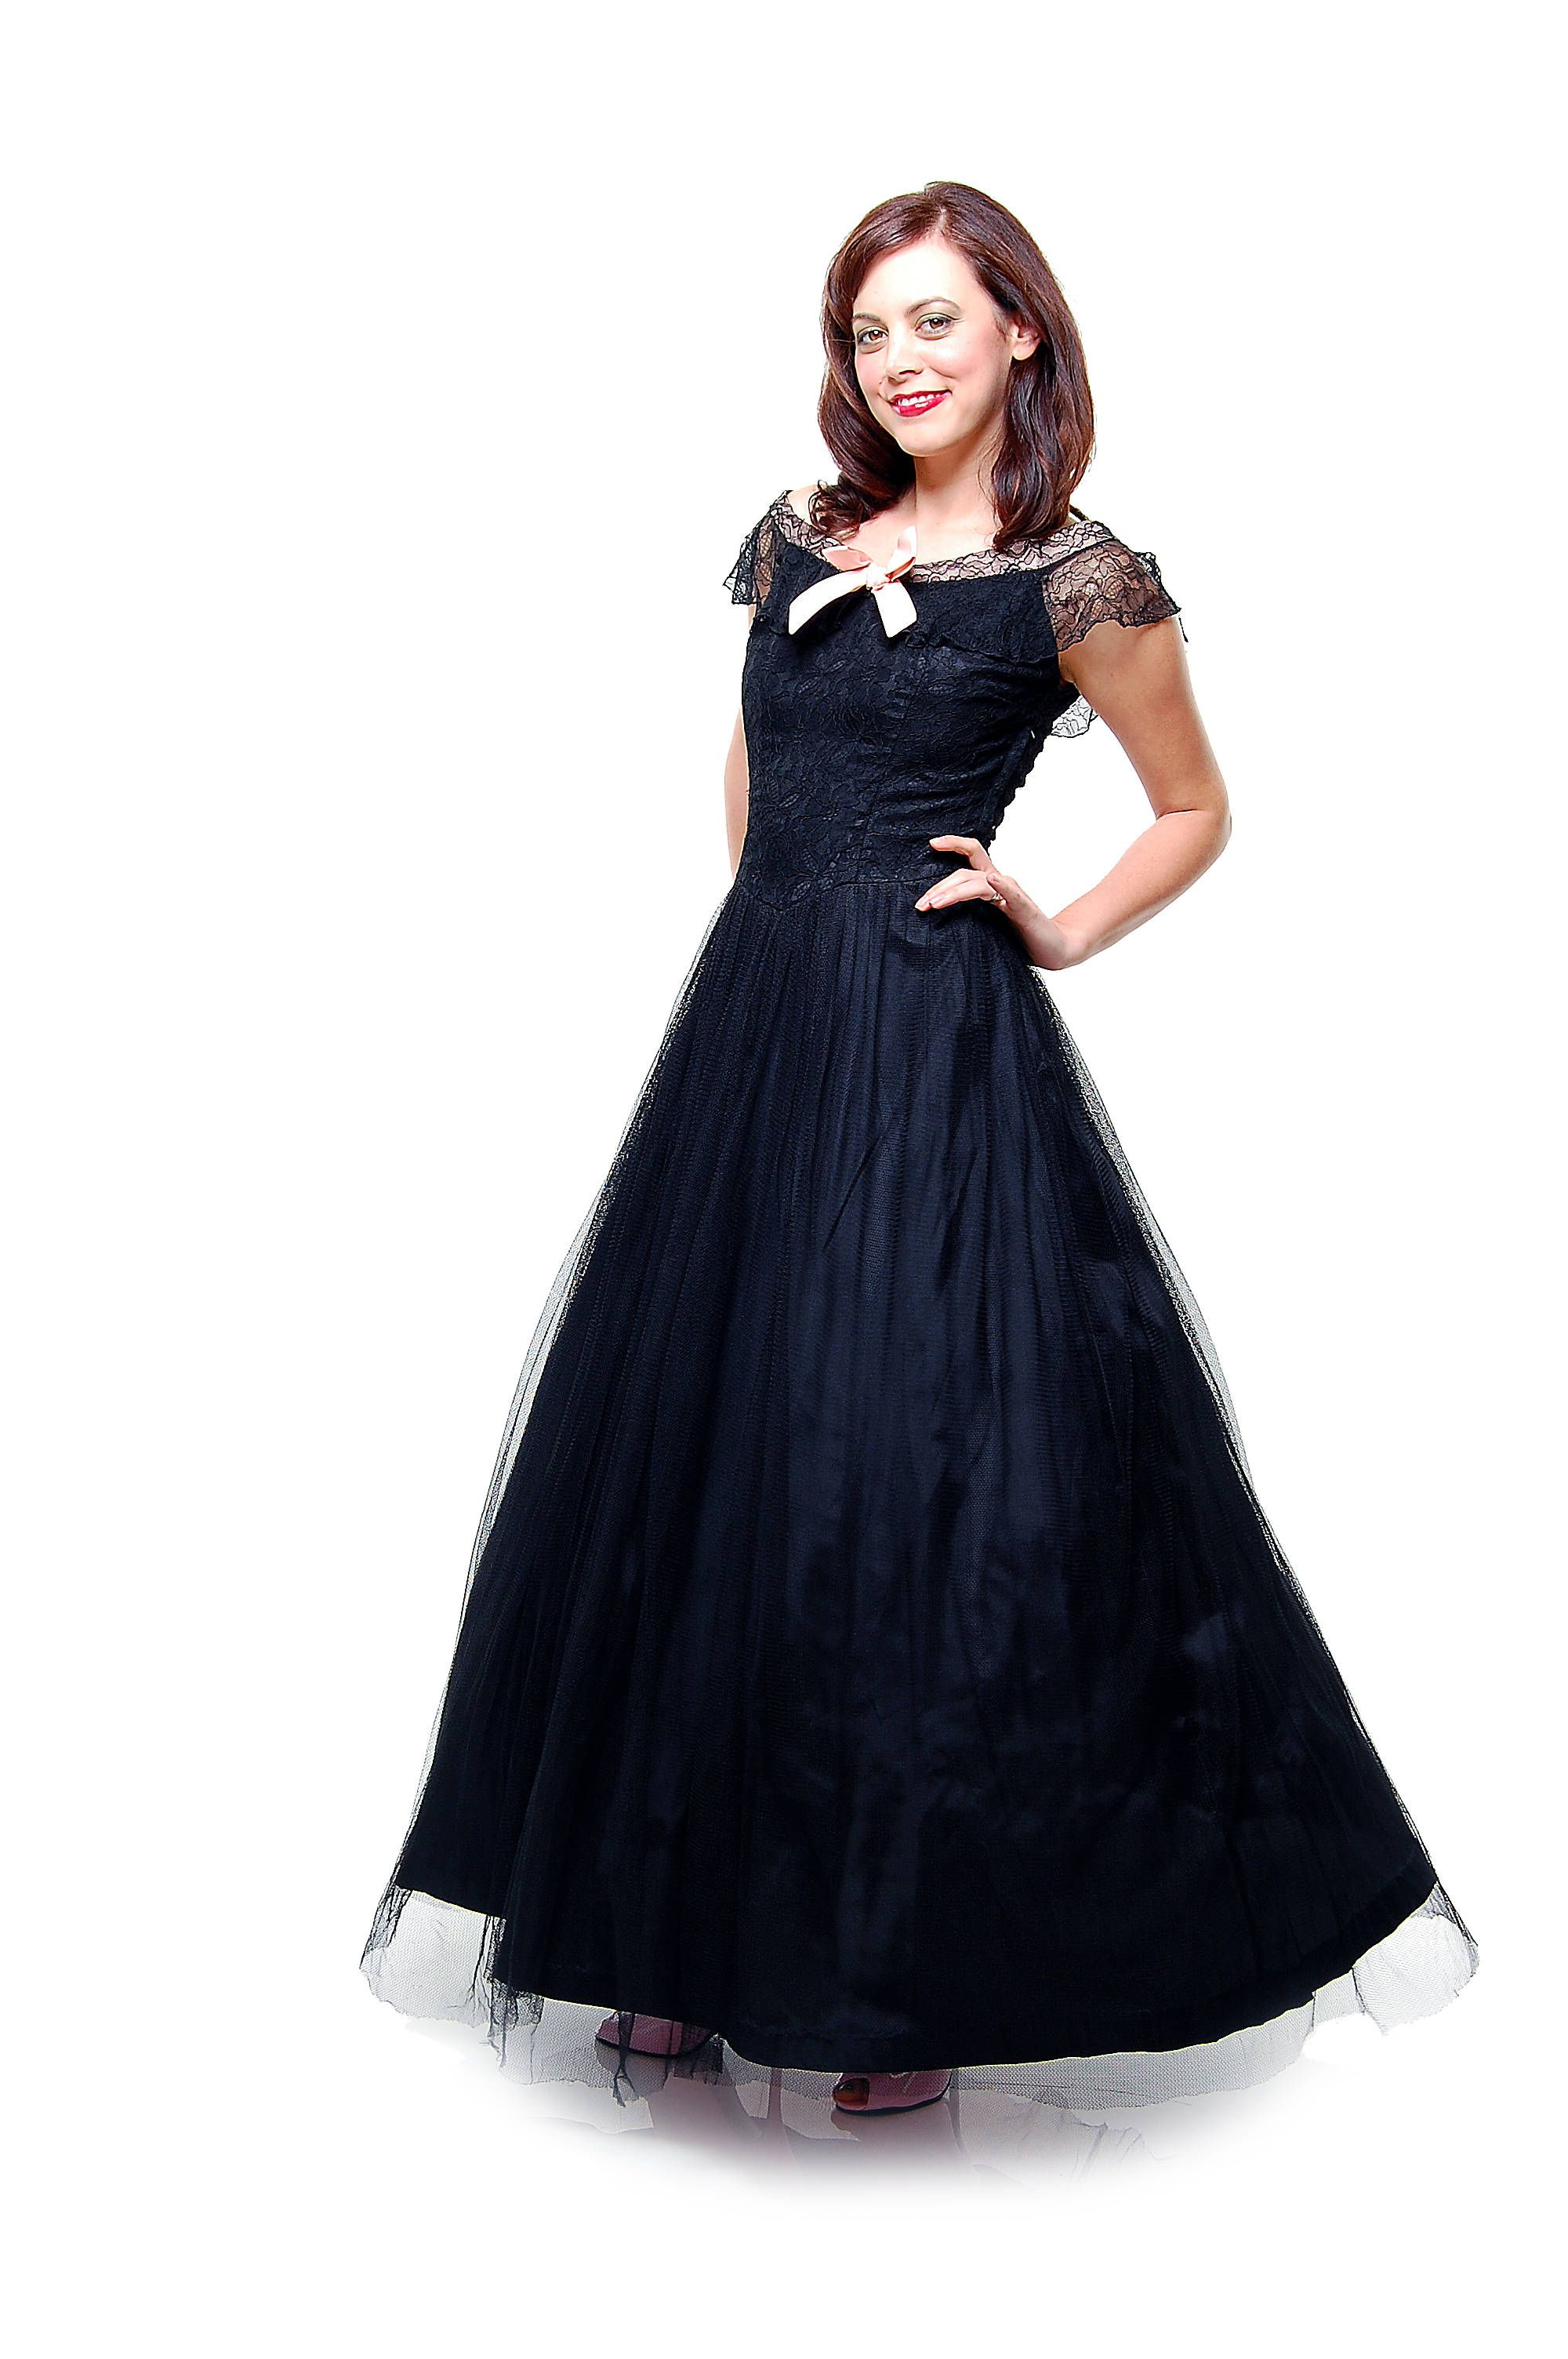 Retro Inspired And Vintage Prom Dresses Prom Dresses Vintage Unique Vintage Prom Dress Vintage Homecoming Dresses [ 3008 x 2000 Pixel ]